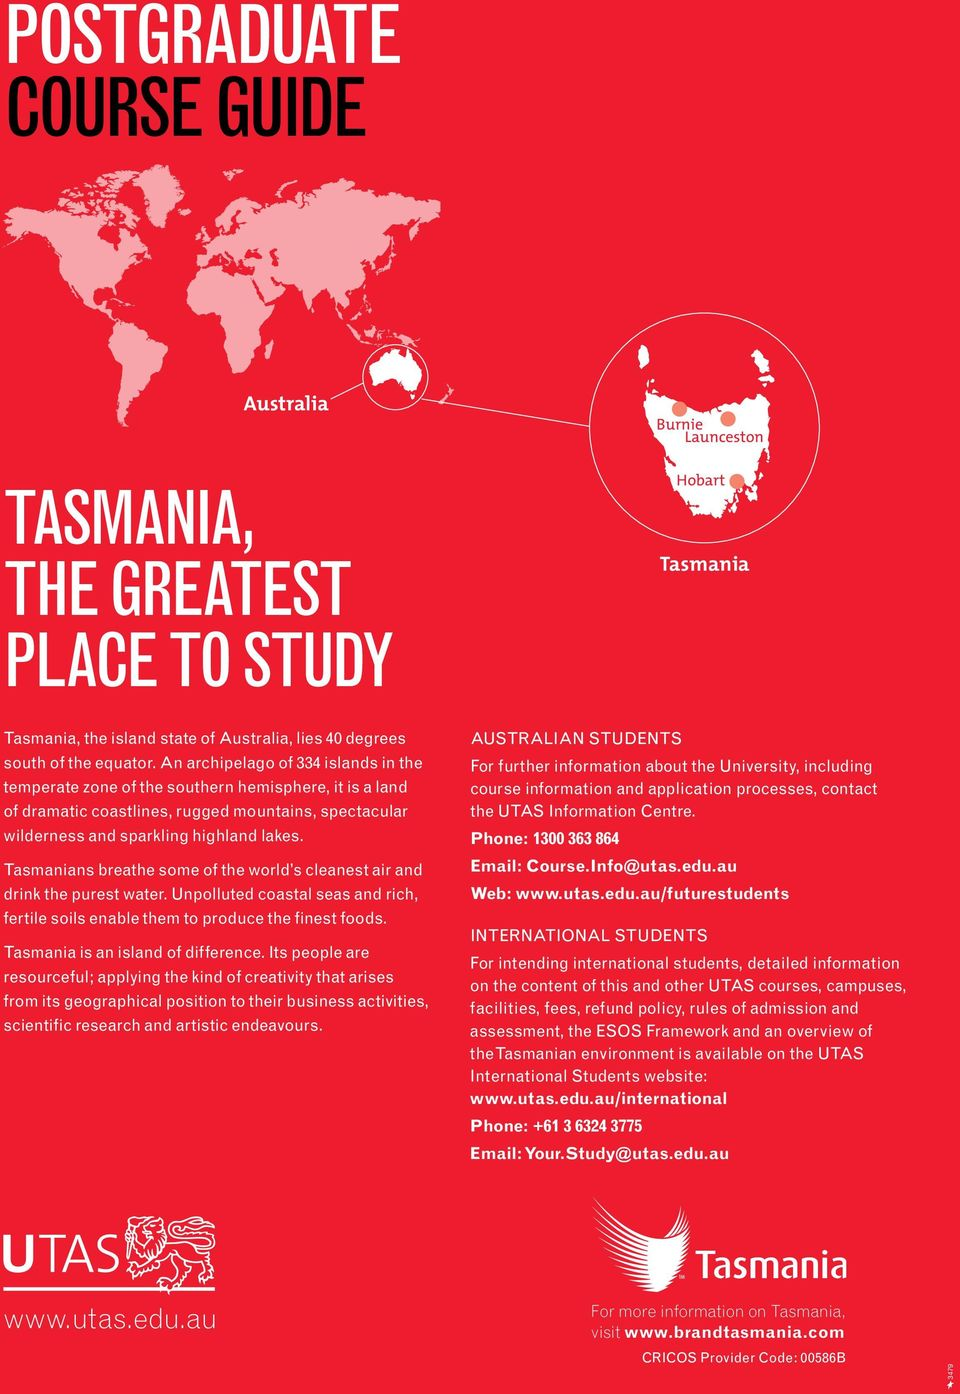 Tasmanians breathe some of the world s cleanest air and drink the purest water. Unpolluted coastal seas and rich, fertile soils enable them to produce the finest foods.